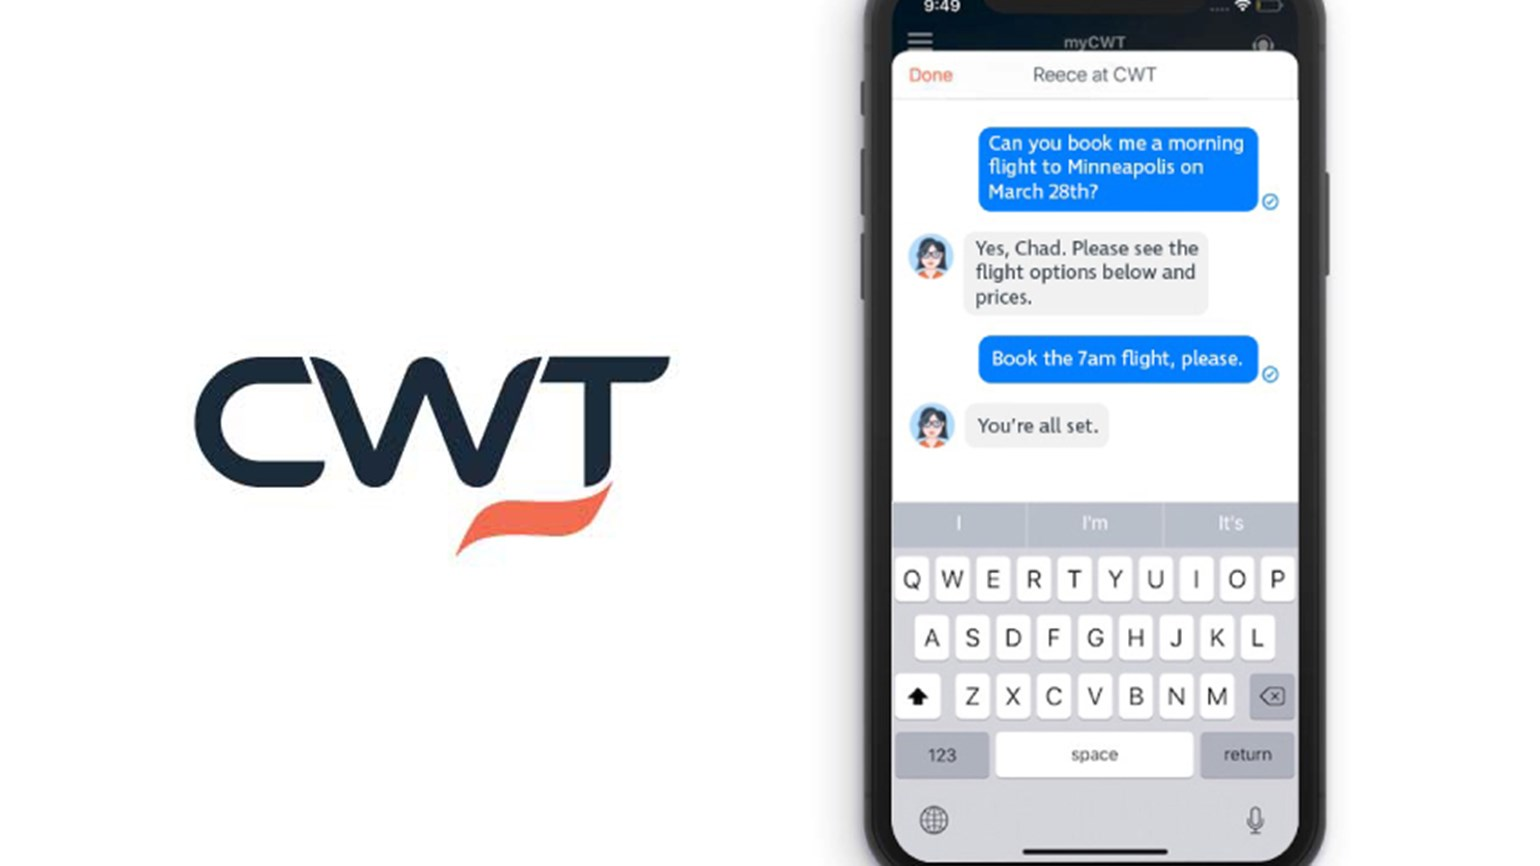 CWT messaging